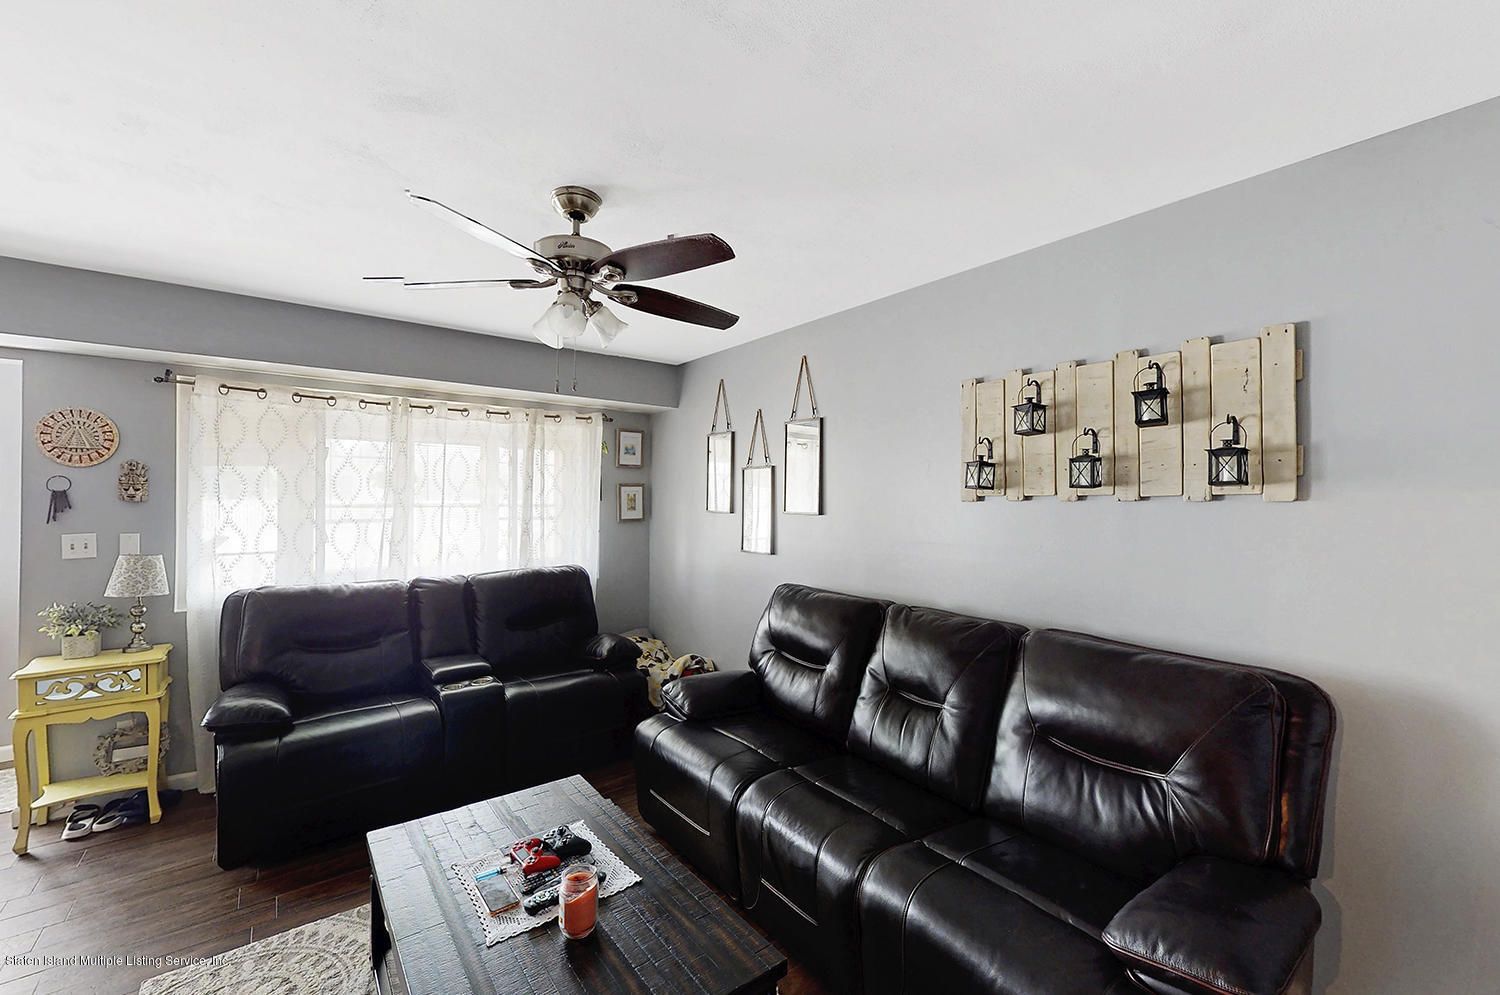 Single Family - Attached 10 Greentree Lane A  Staten Island, NY 10314, MLS-1131041-11